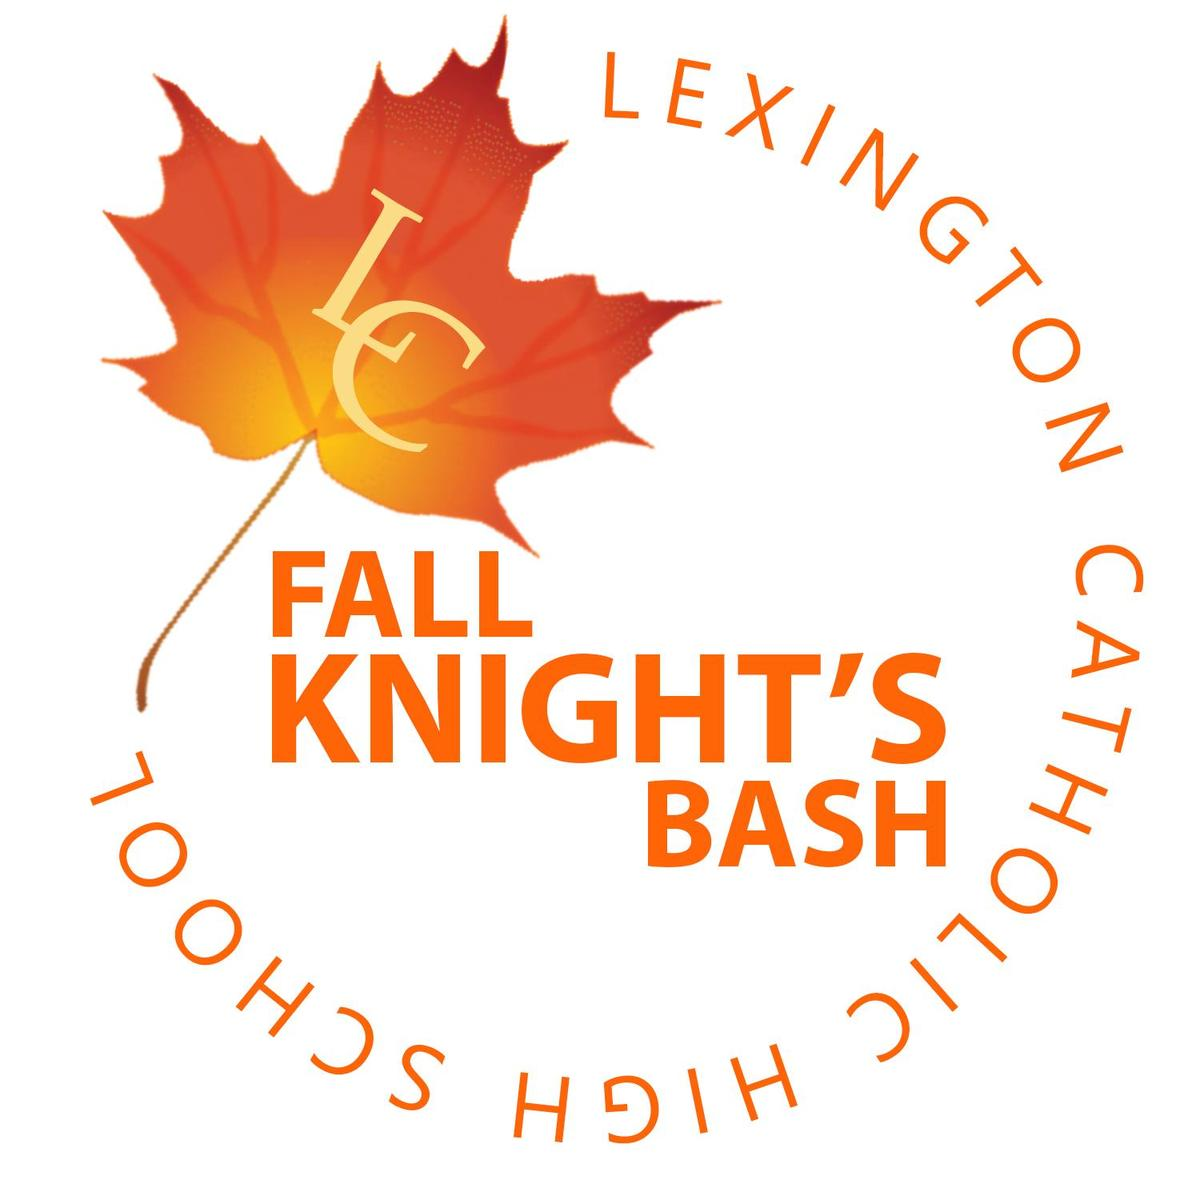 Save The Date Fall Knights Bash 2018 Will Be Held Saturday October 13 Tickets Online For Purchase After July 1 READ MORE About Event